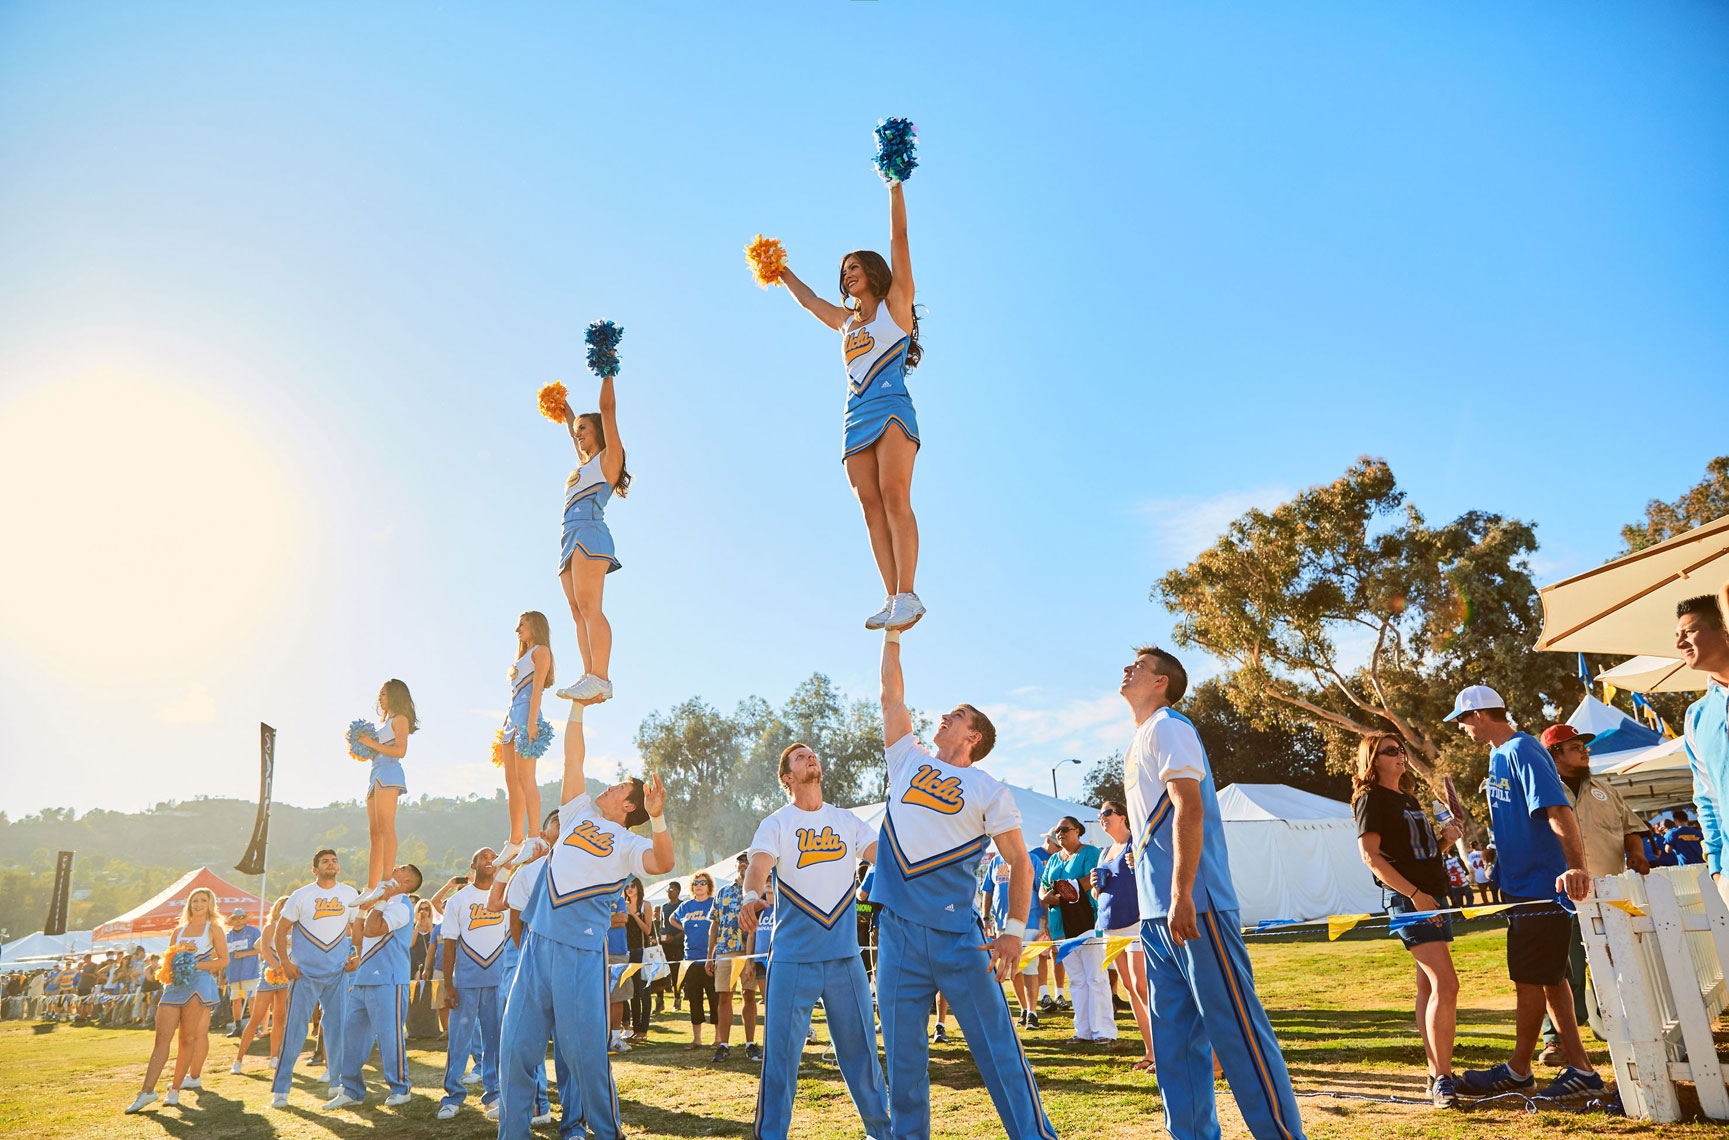 141004_UCLA_GAMEDAY_2C1B0189_OG